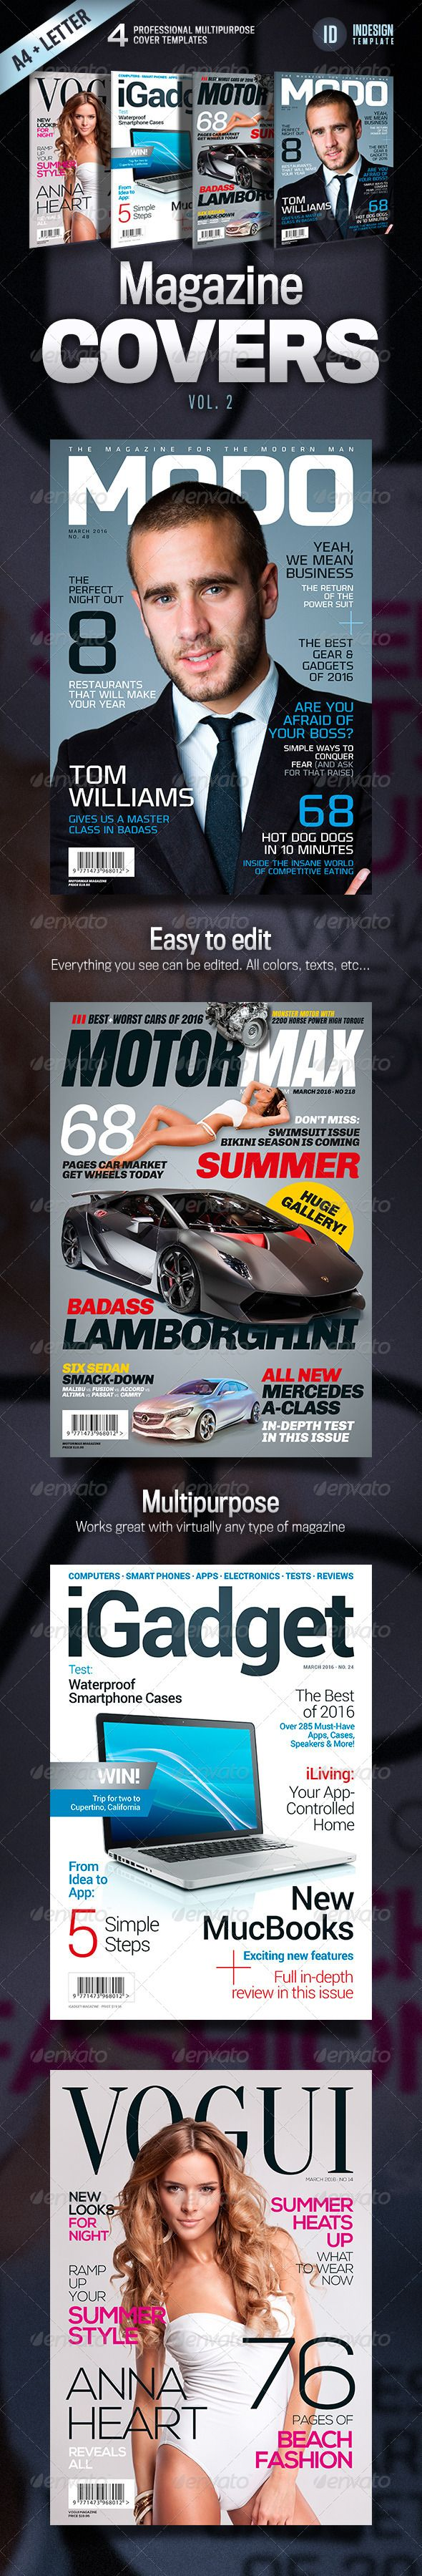 Magazine Covers Vol 2 Print Templates Magazine Cover Template